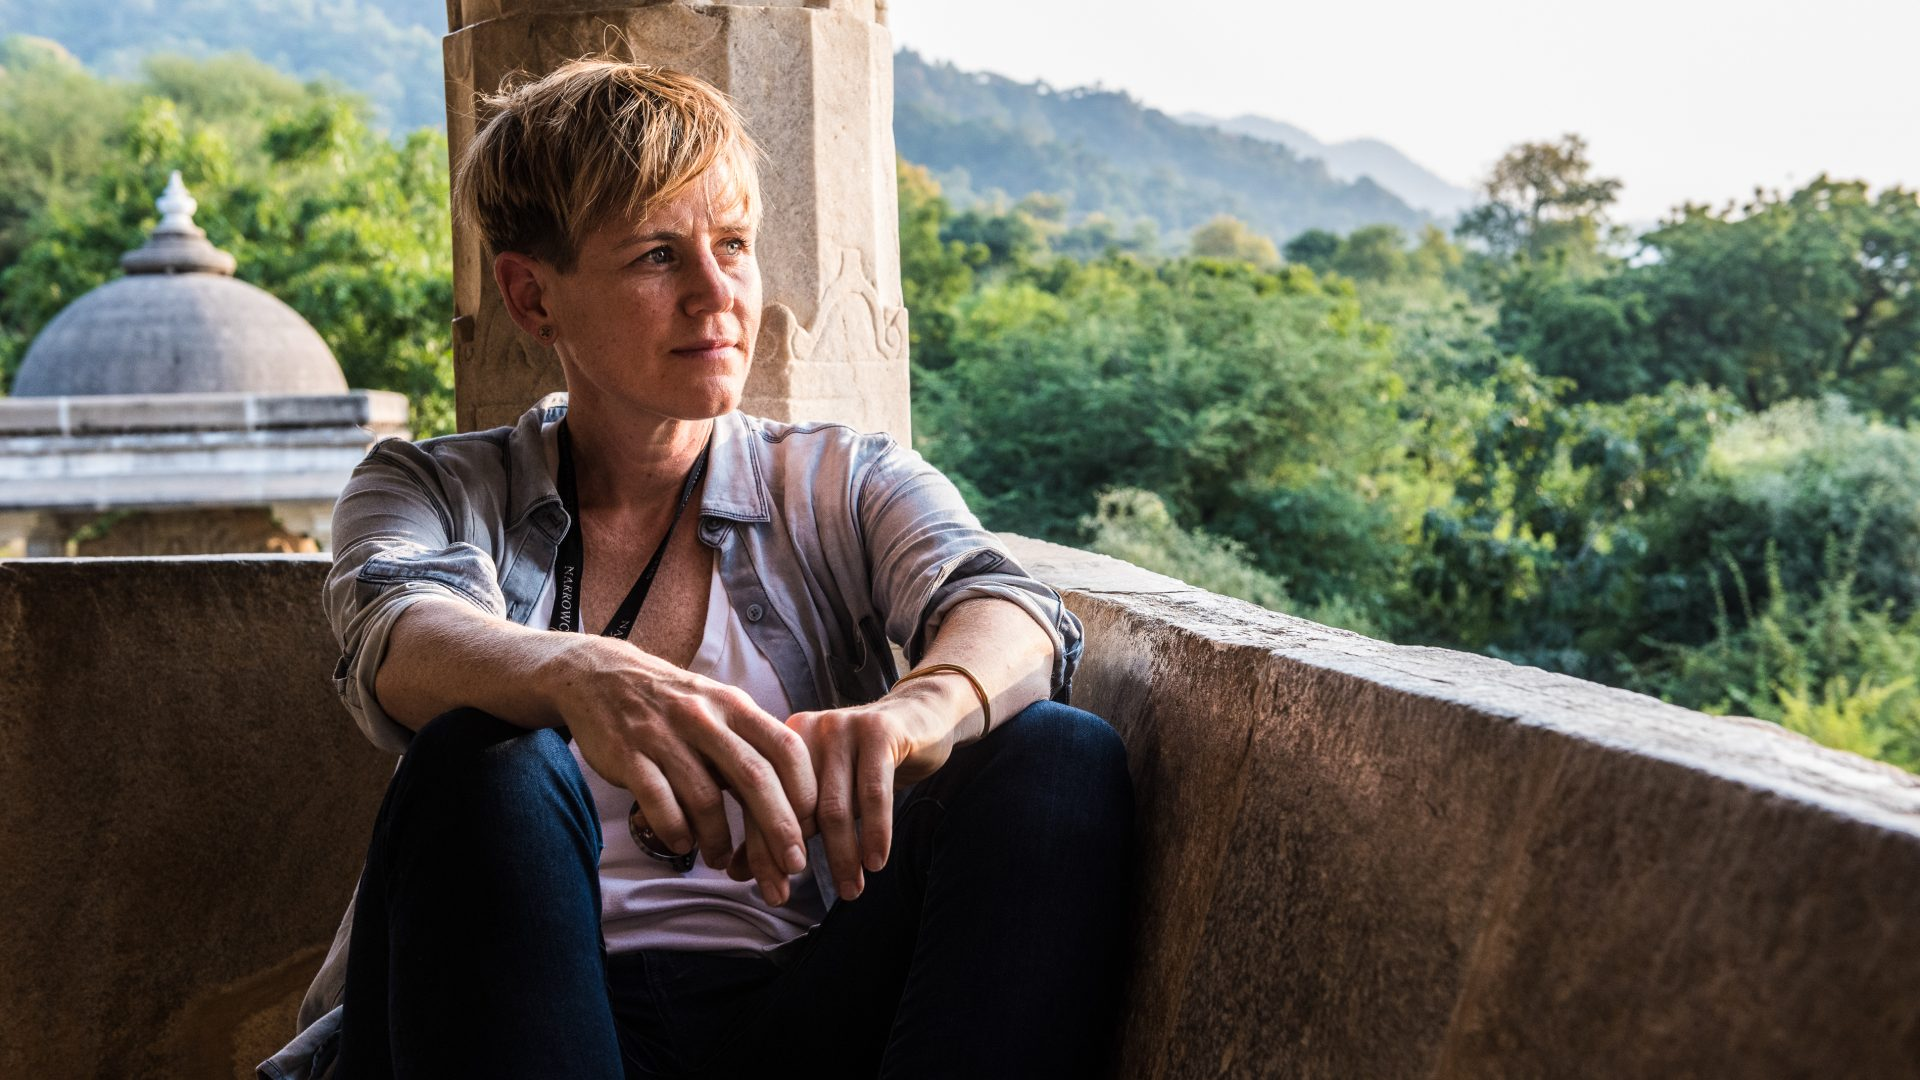 Contributor profile photo of Nicola Bailey. Looking peaceful at a temple in India